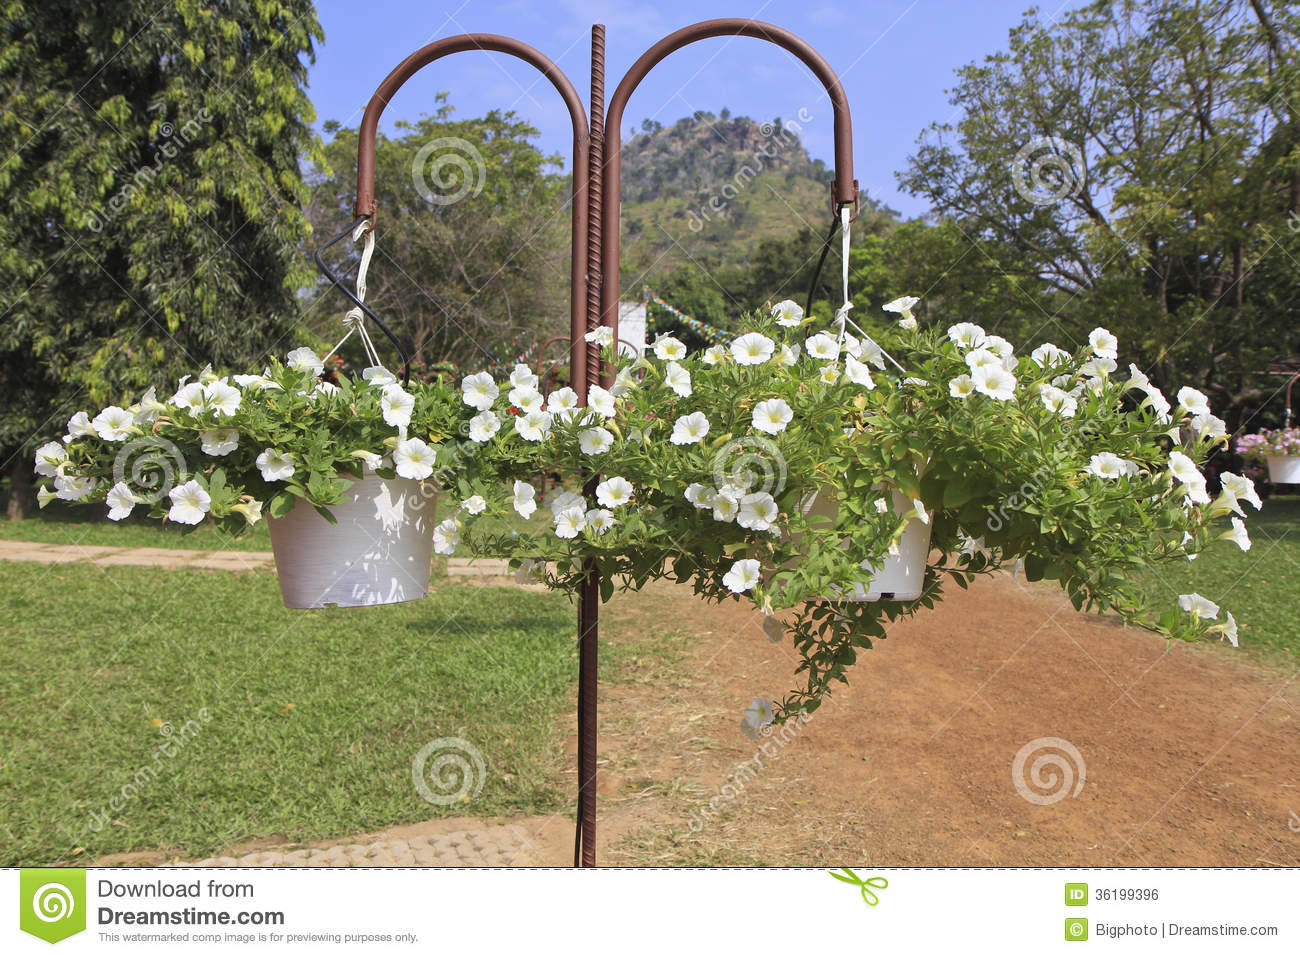 White flowers for hanging baskets image collections flower hanging baskets with white petunia flowers hanging in a garden hanging baskets with white petunia flowers workwithnaturefo